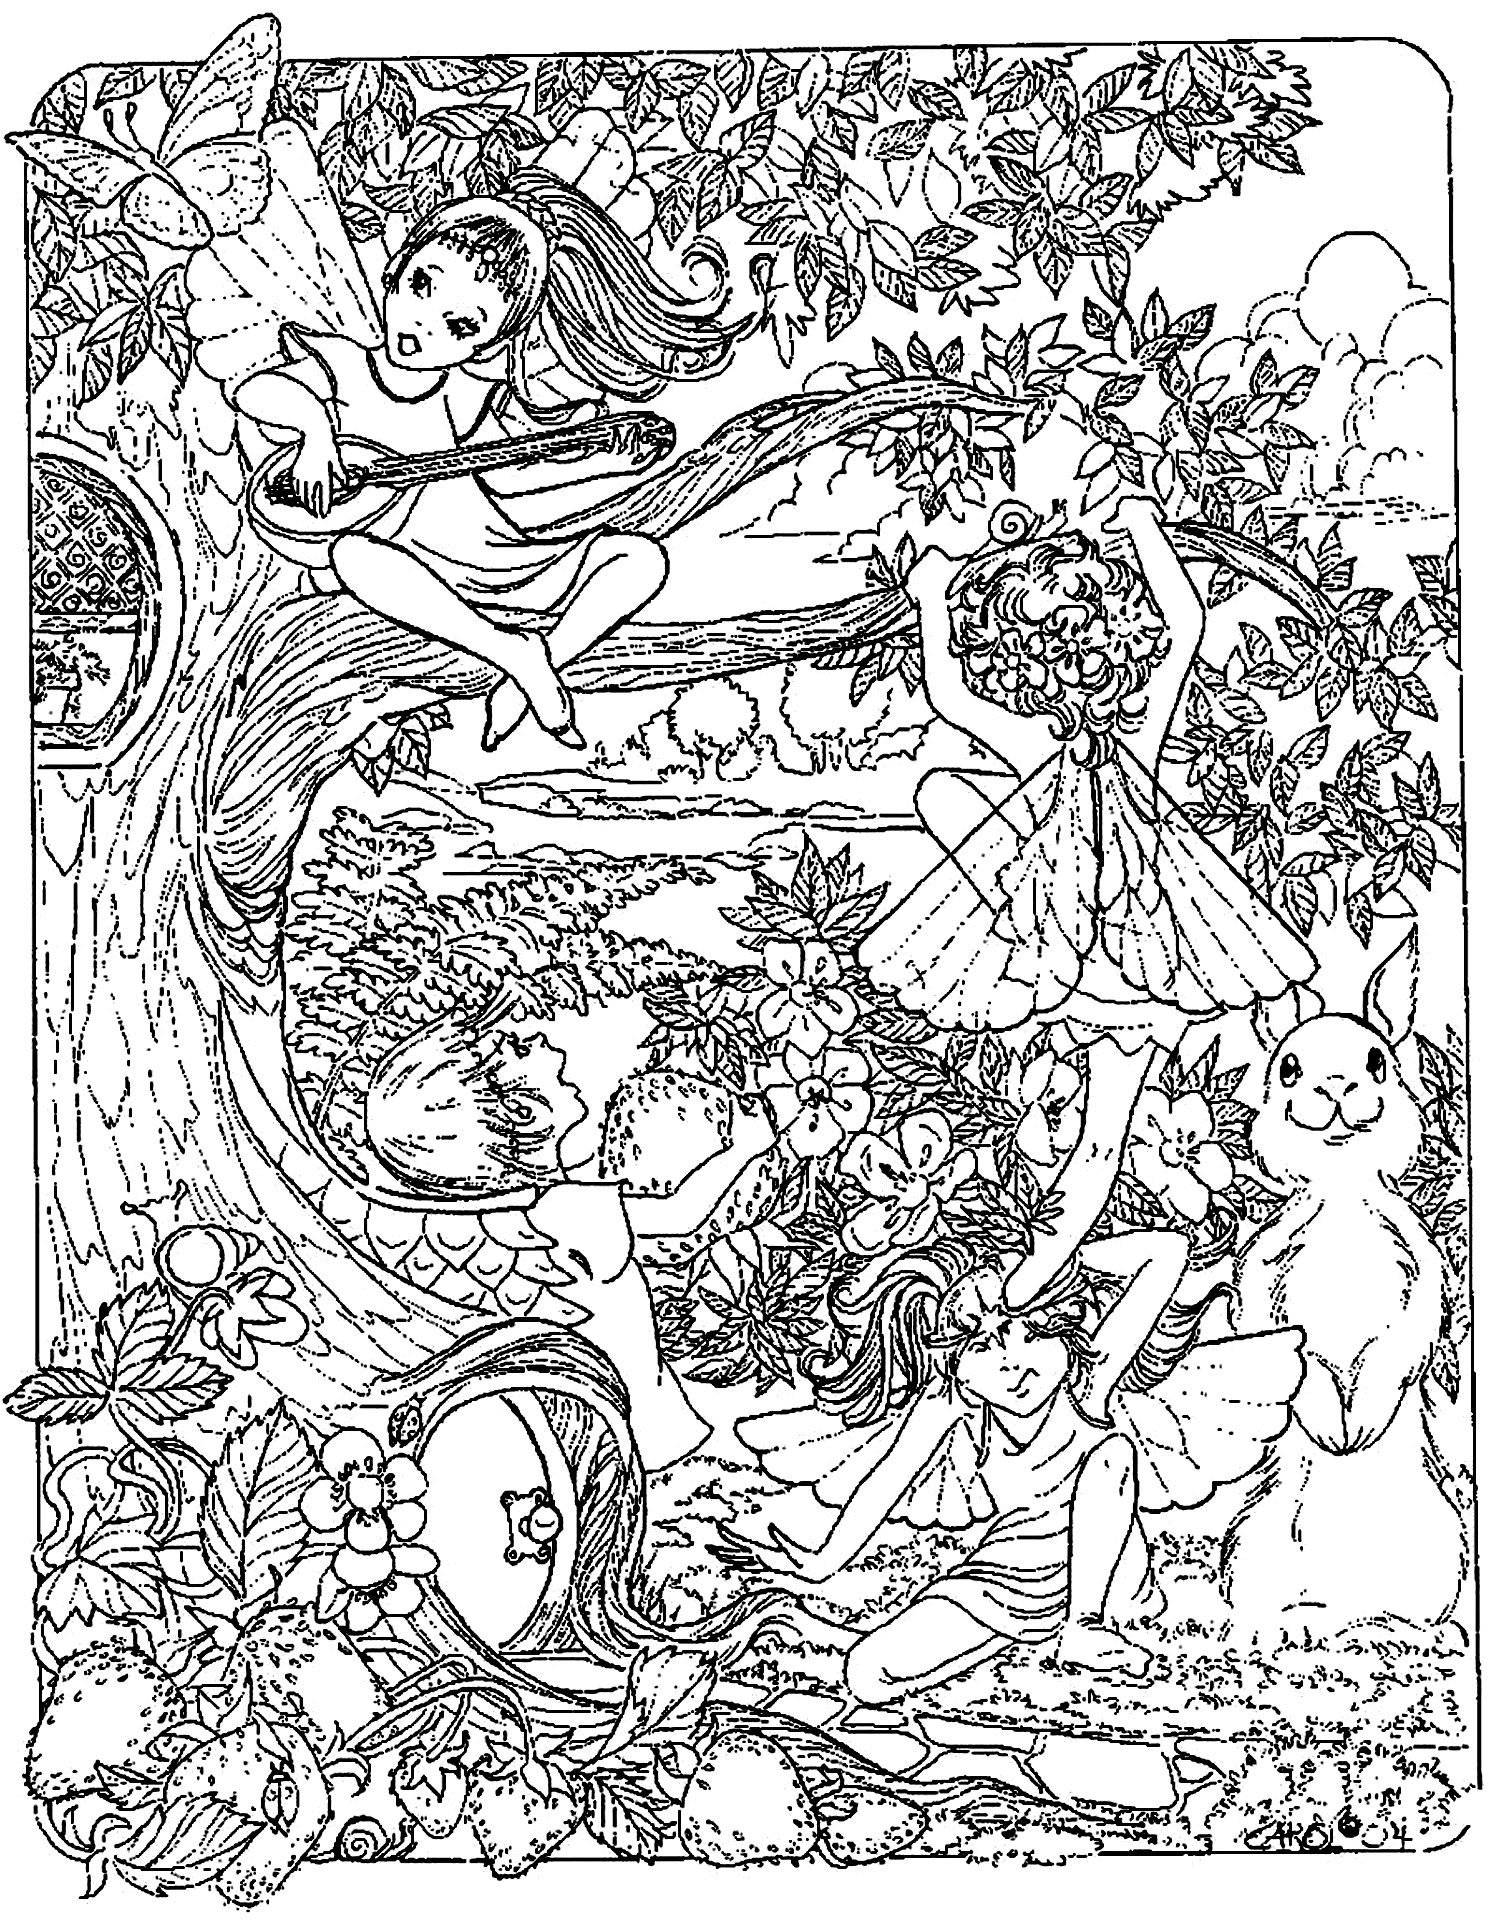 fantasy elf coloring pages 79 best elves coloring pages images on pinterest elves pages fantasy elf coloring